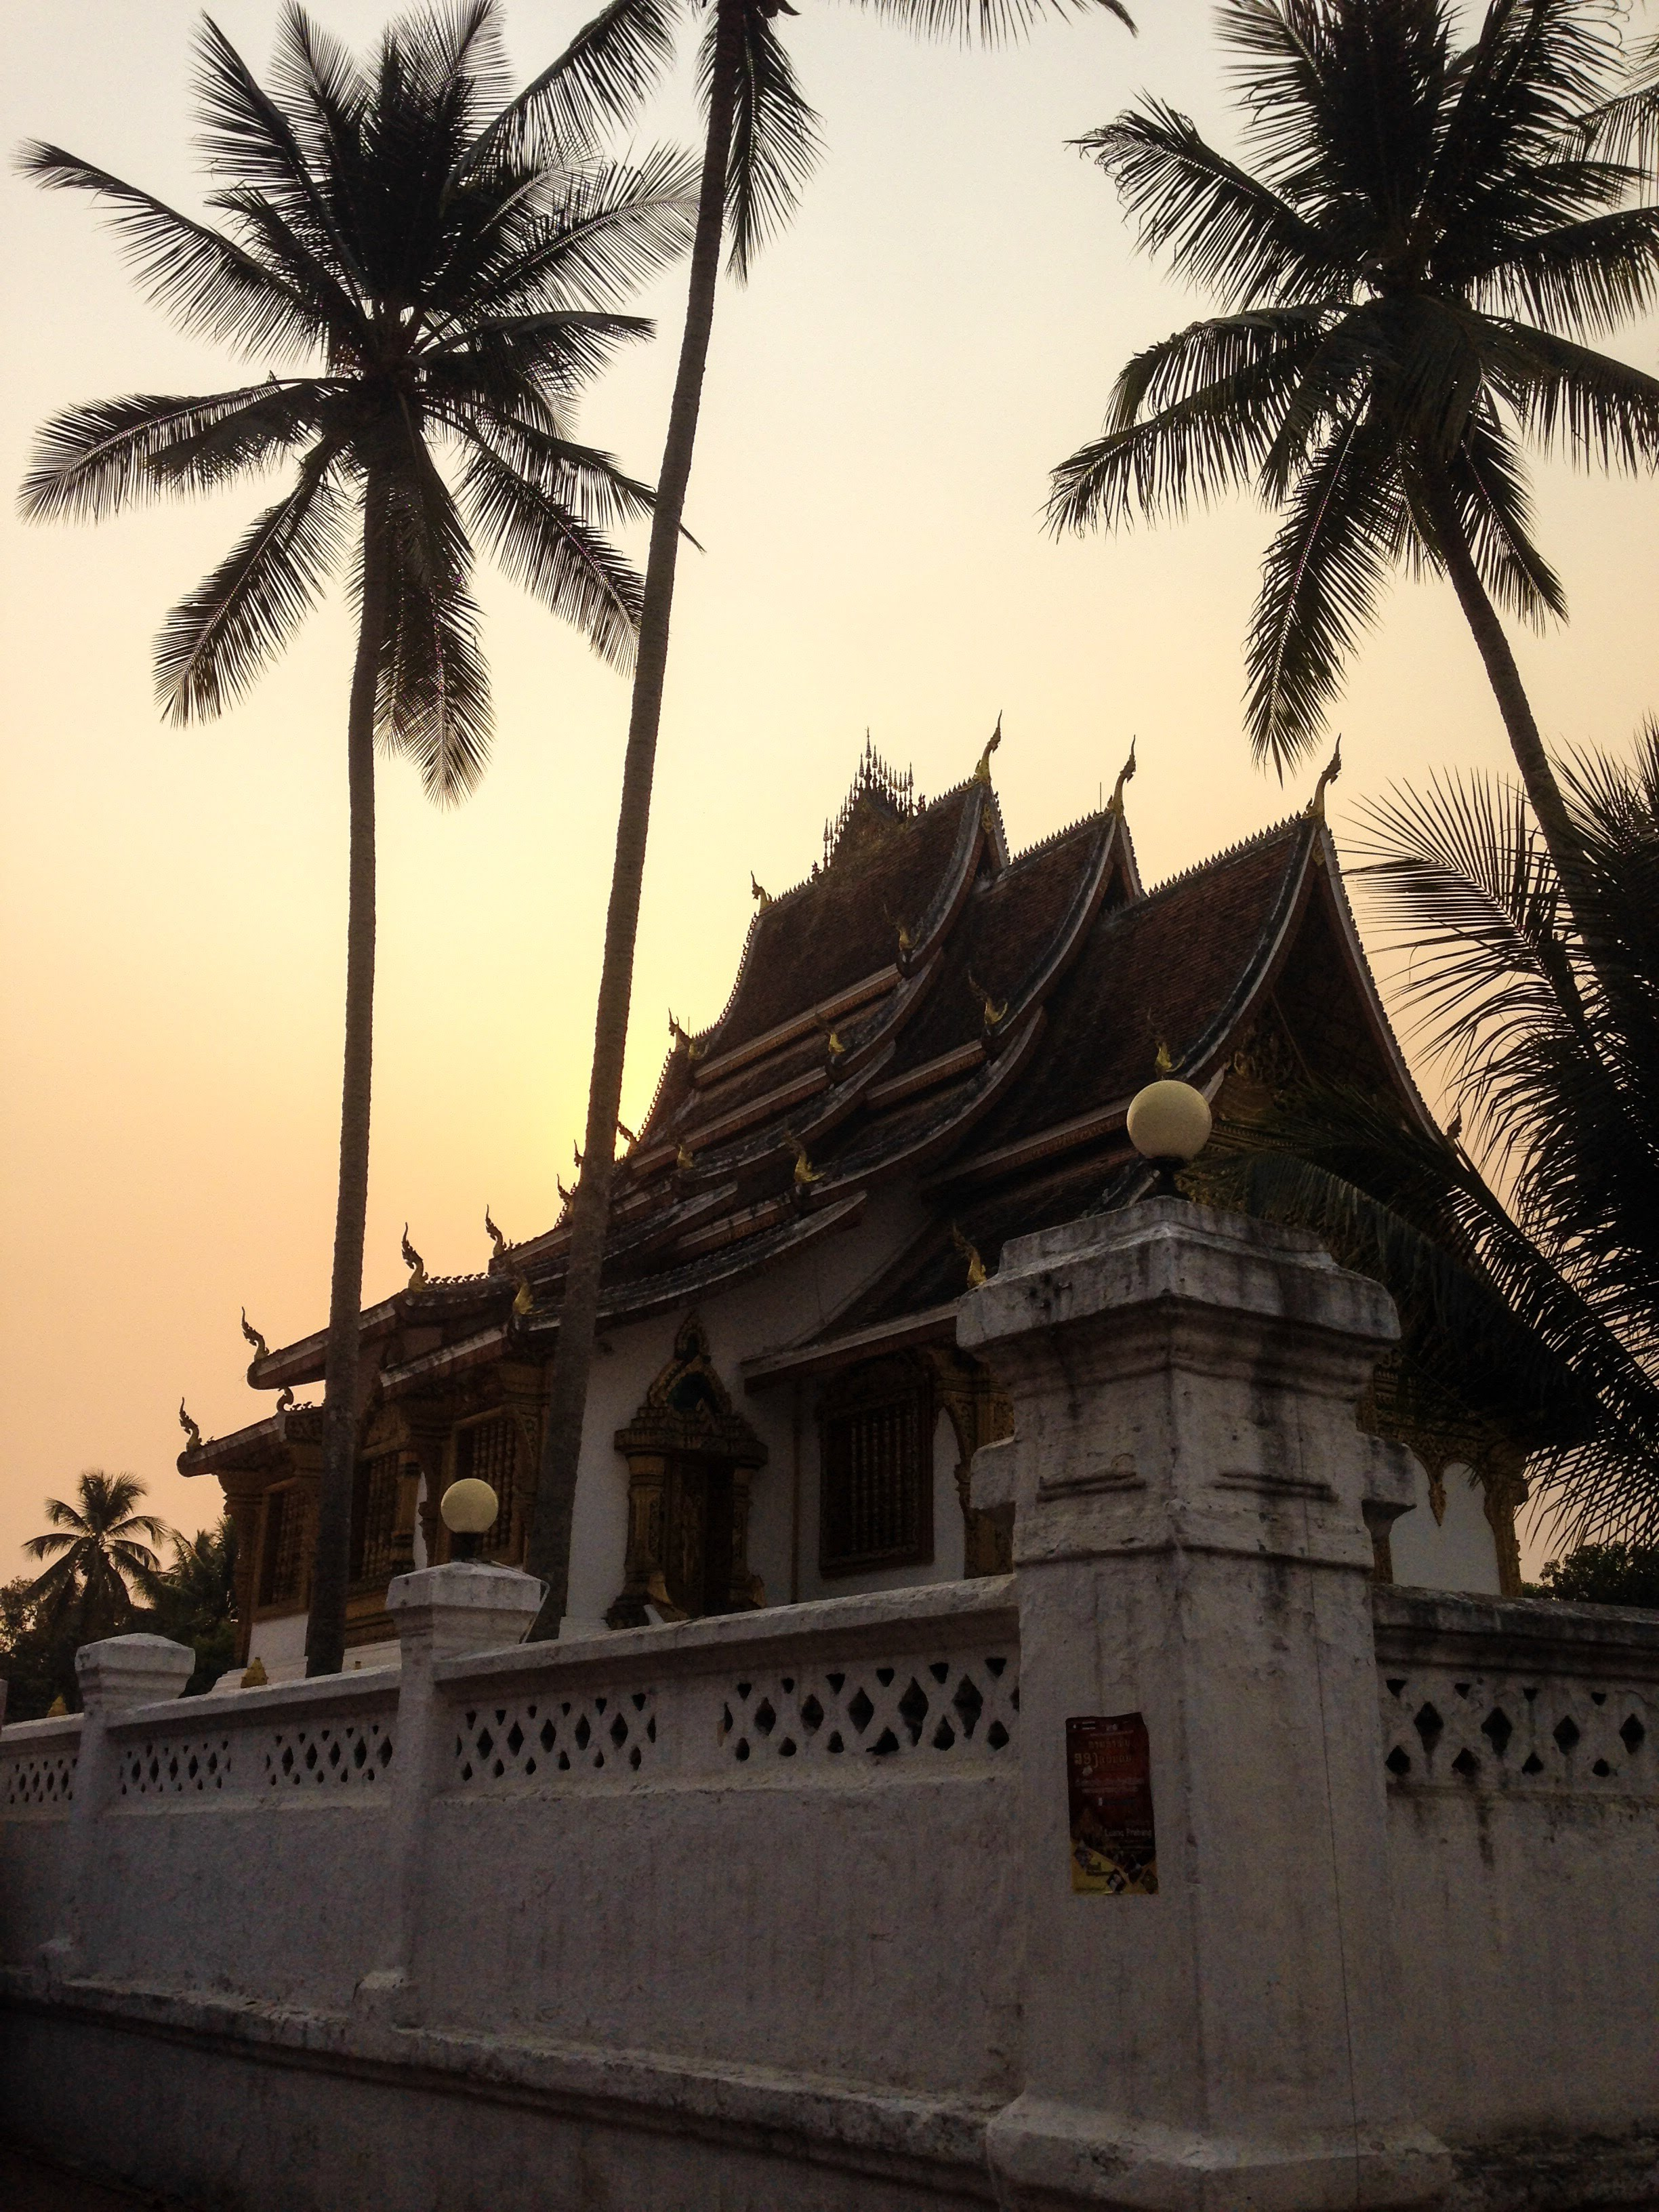 Luang Prabang Laos southeast Asia temple sunset